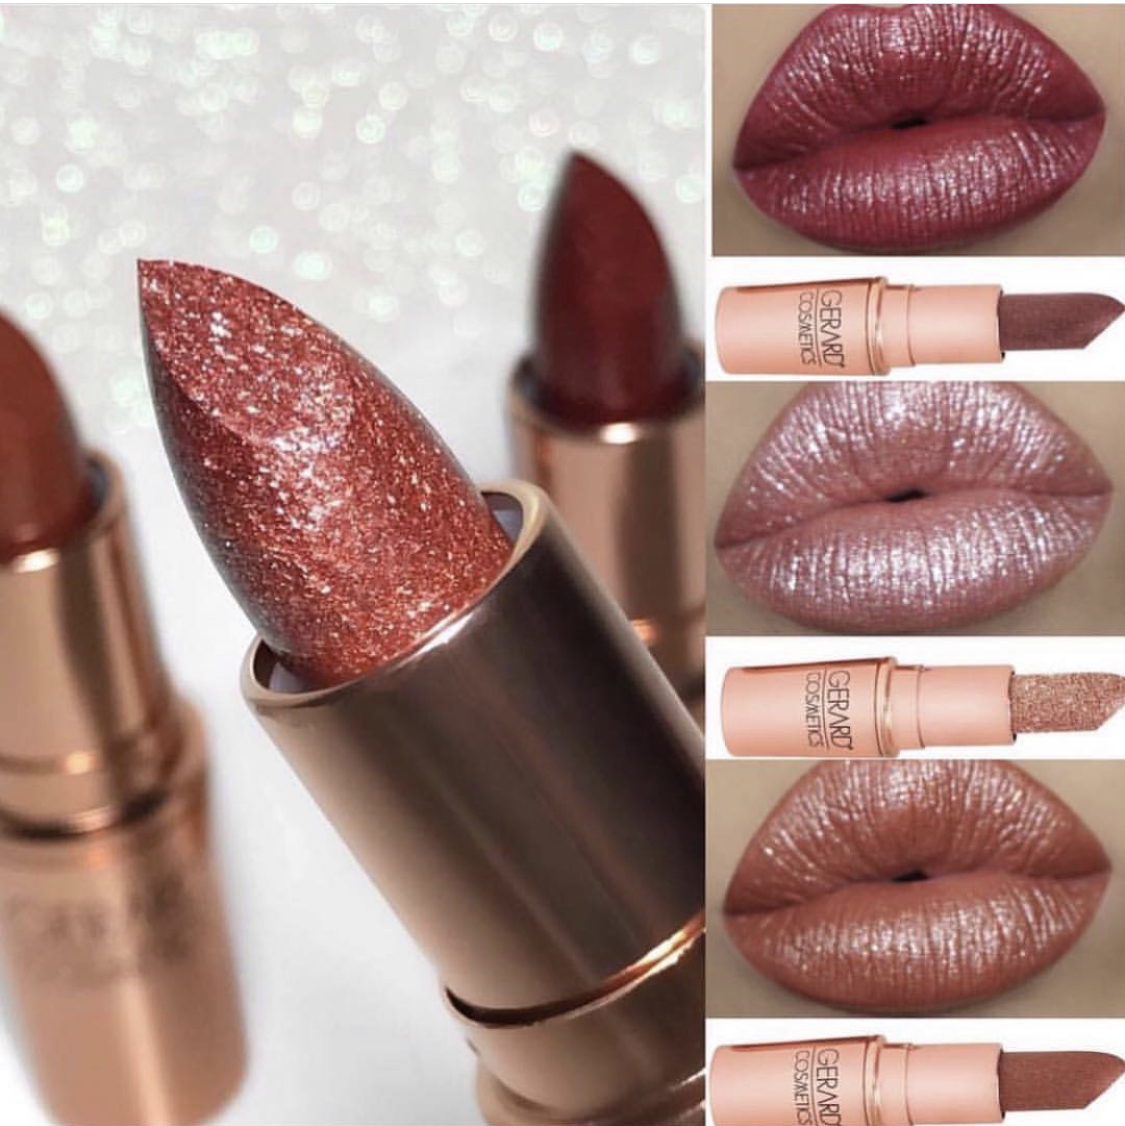 30% Off - Metallic lipsticks, matte liquid lipstick, and haute highlighters! Use promo code YVON LUX and enjoy 30% OFF of everything!